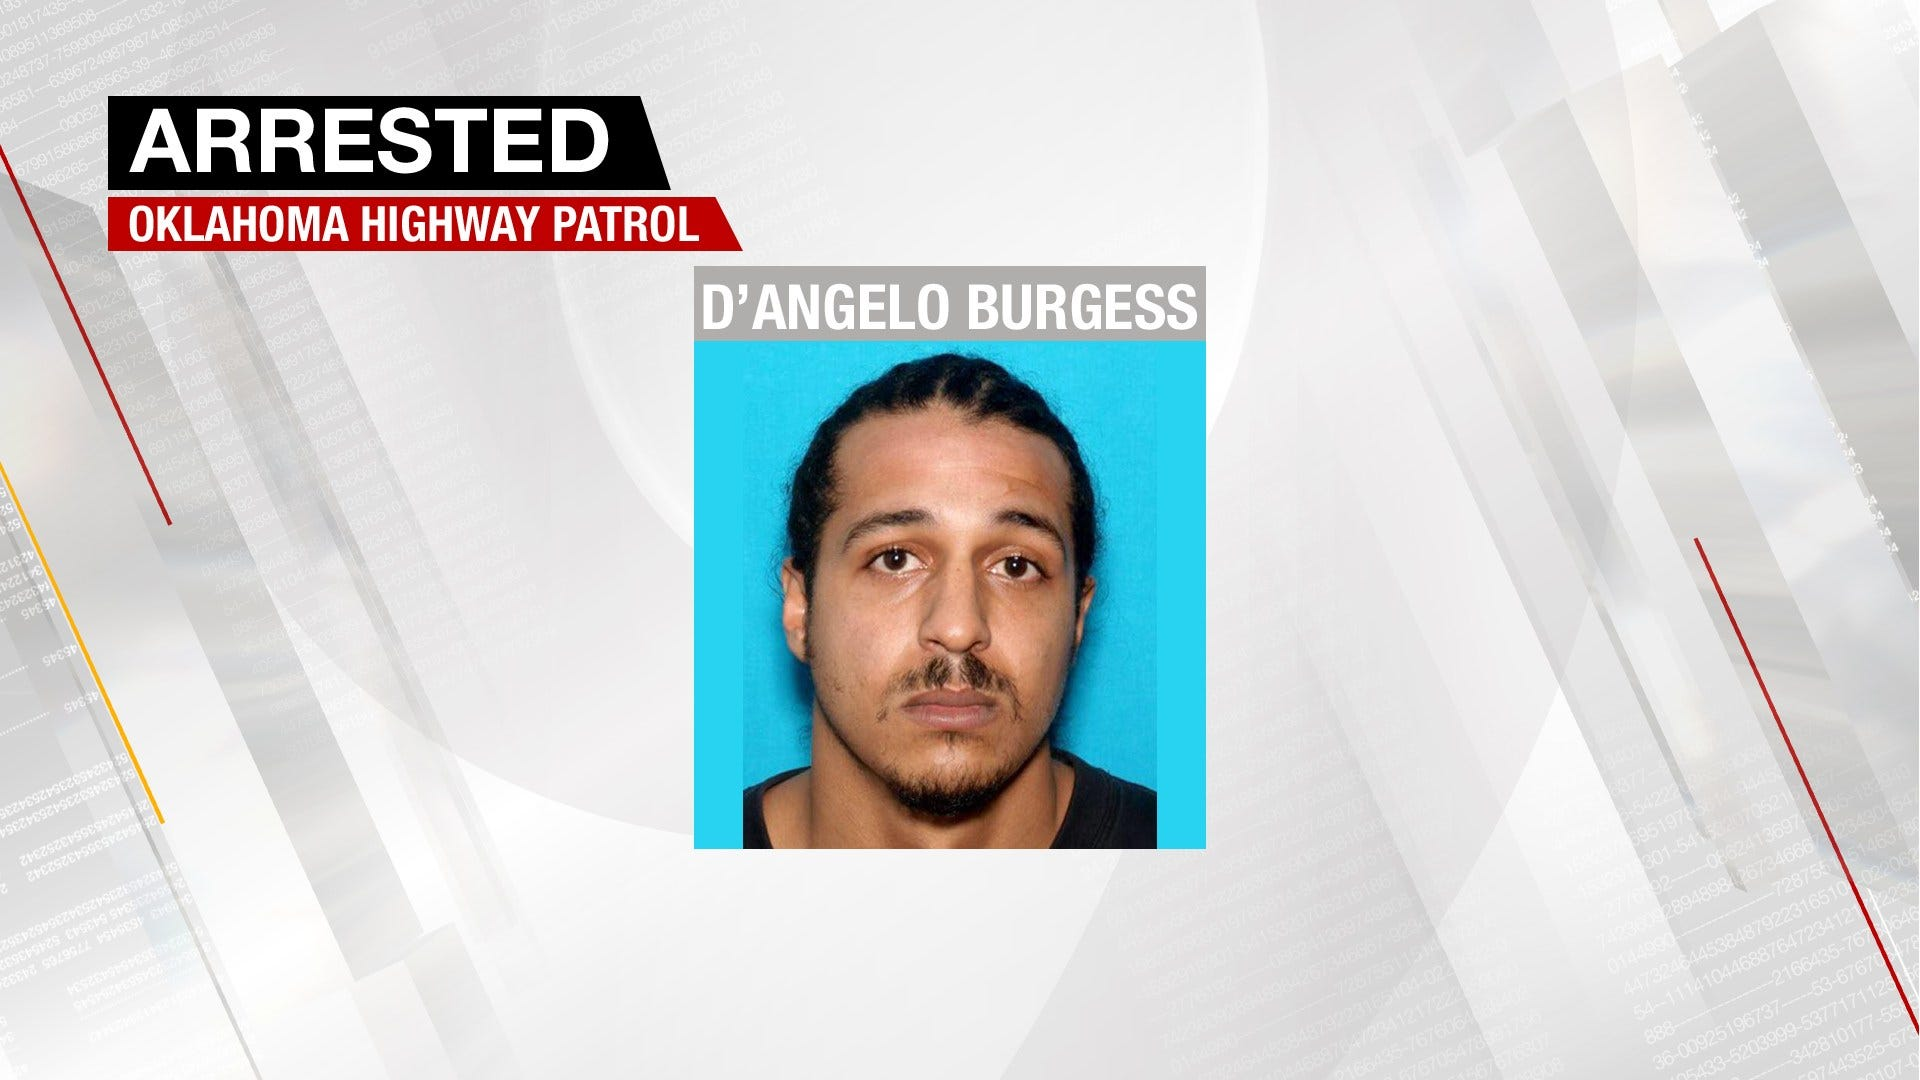 OHP Lt. Still Critical, Man Arrested After OHP Chase On Friday